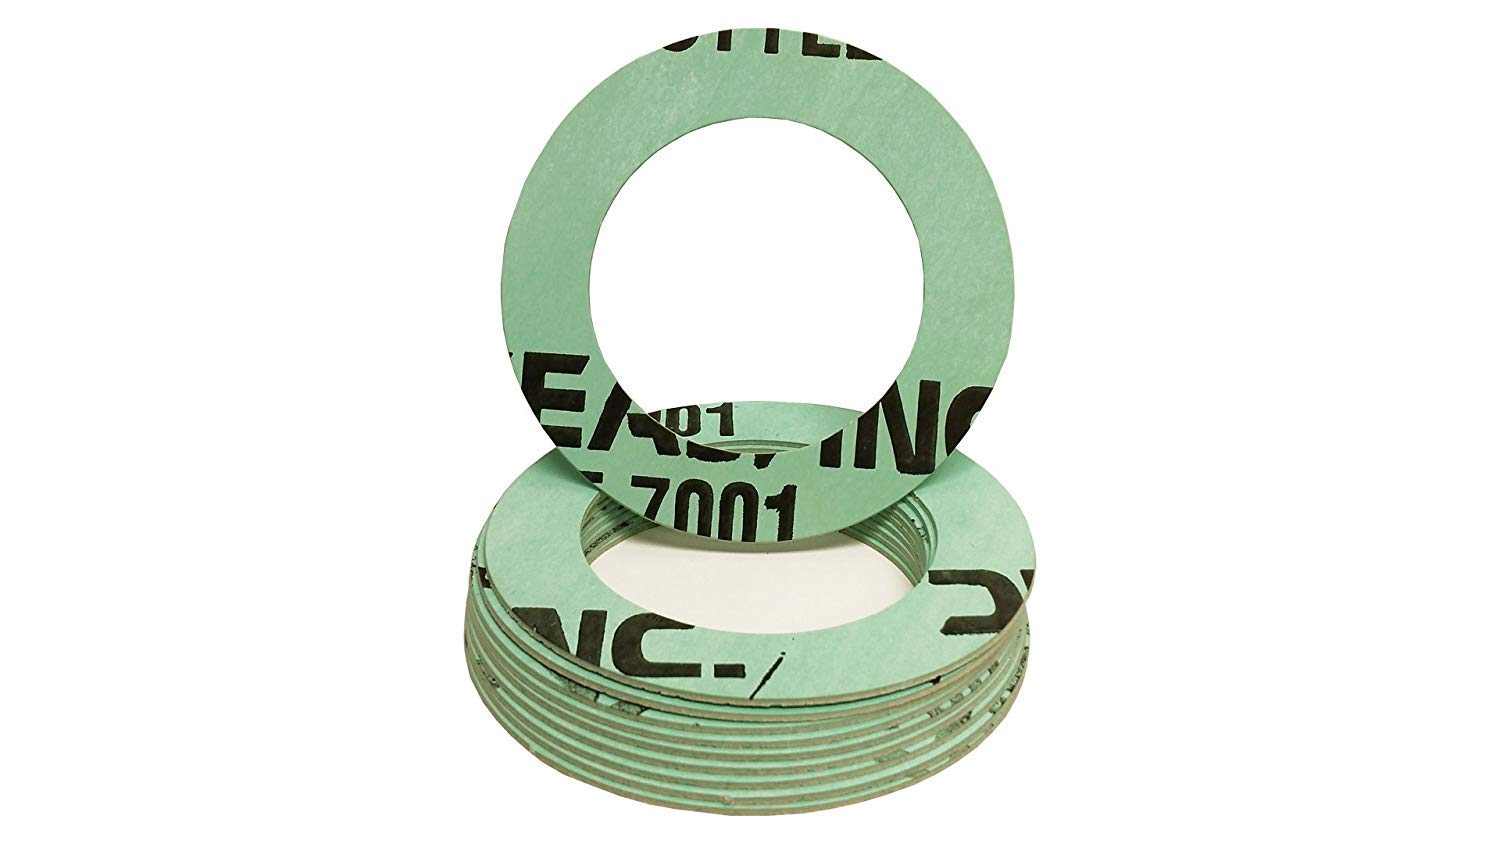 Sterling Seal & Supply CRG7001NSF.400.062.300x10 1/16'' Thick NSF-61 Certified 300# Class Flange 4'' Ring Gasket (qty 10 gaskets)